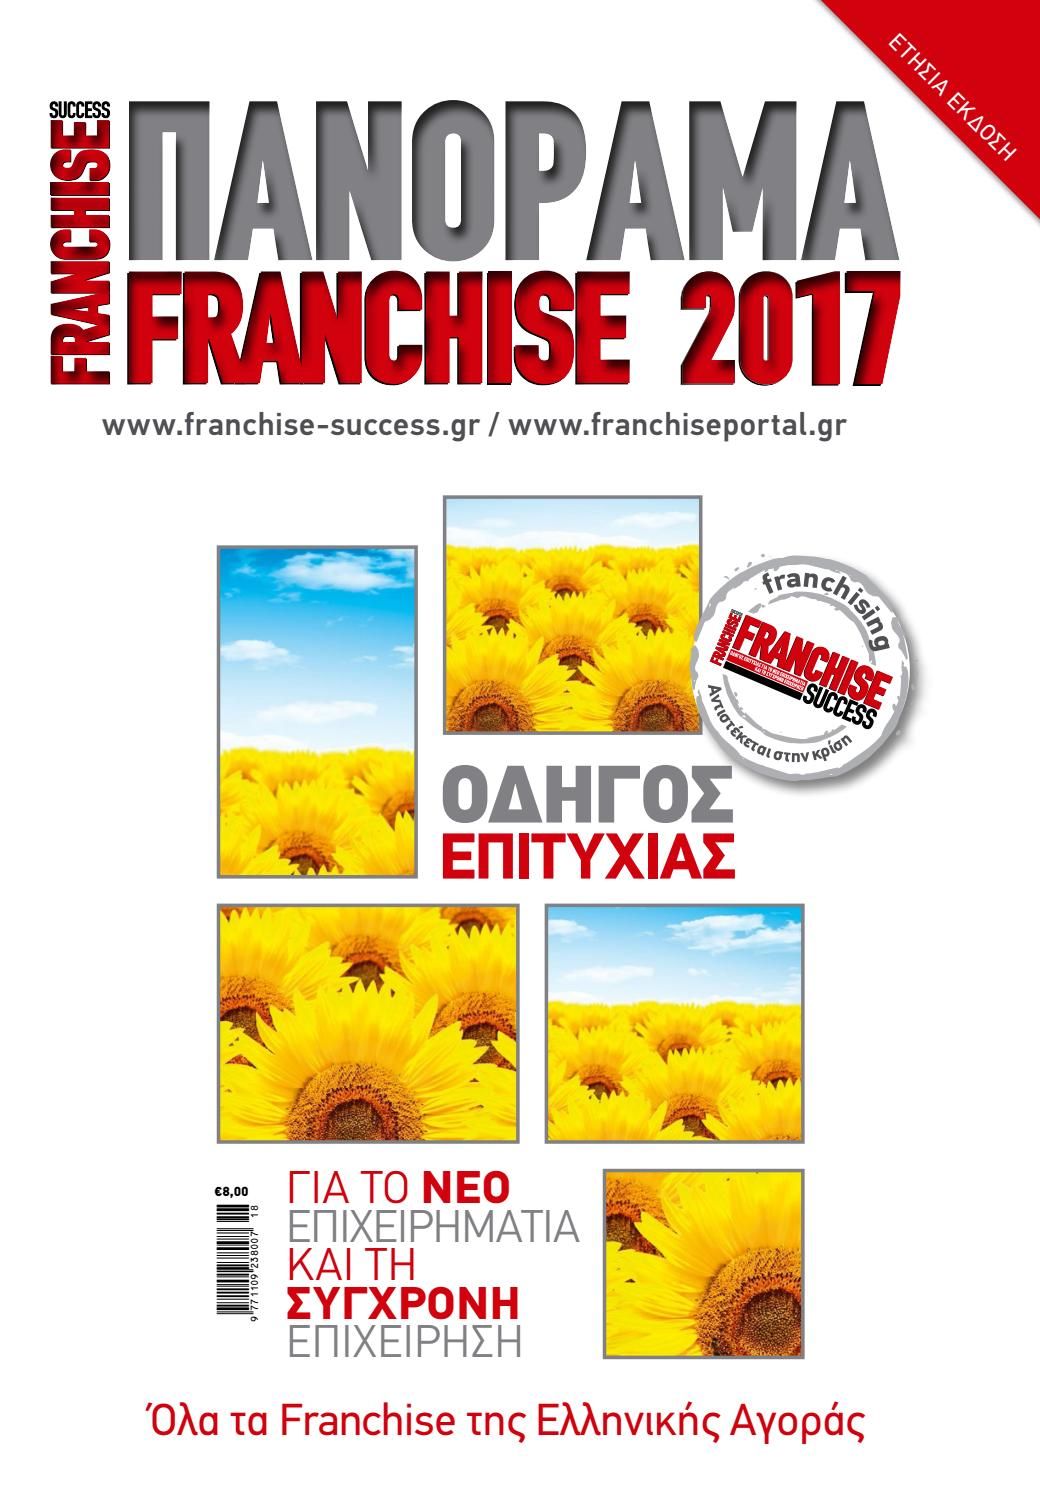 7023eb9c2399 FRANCHISE SUCCESS Ετήσιος Οδηγός ΠΑΝΟΡΑΜΑ FRANCHISE 2017 by franchise  success - issuu